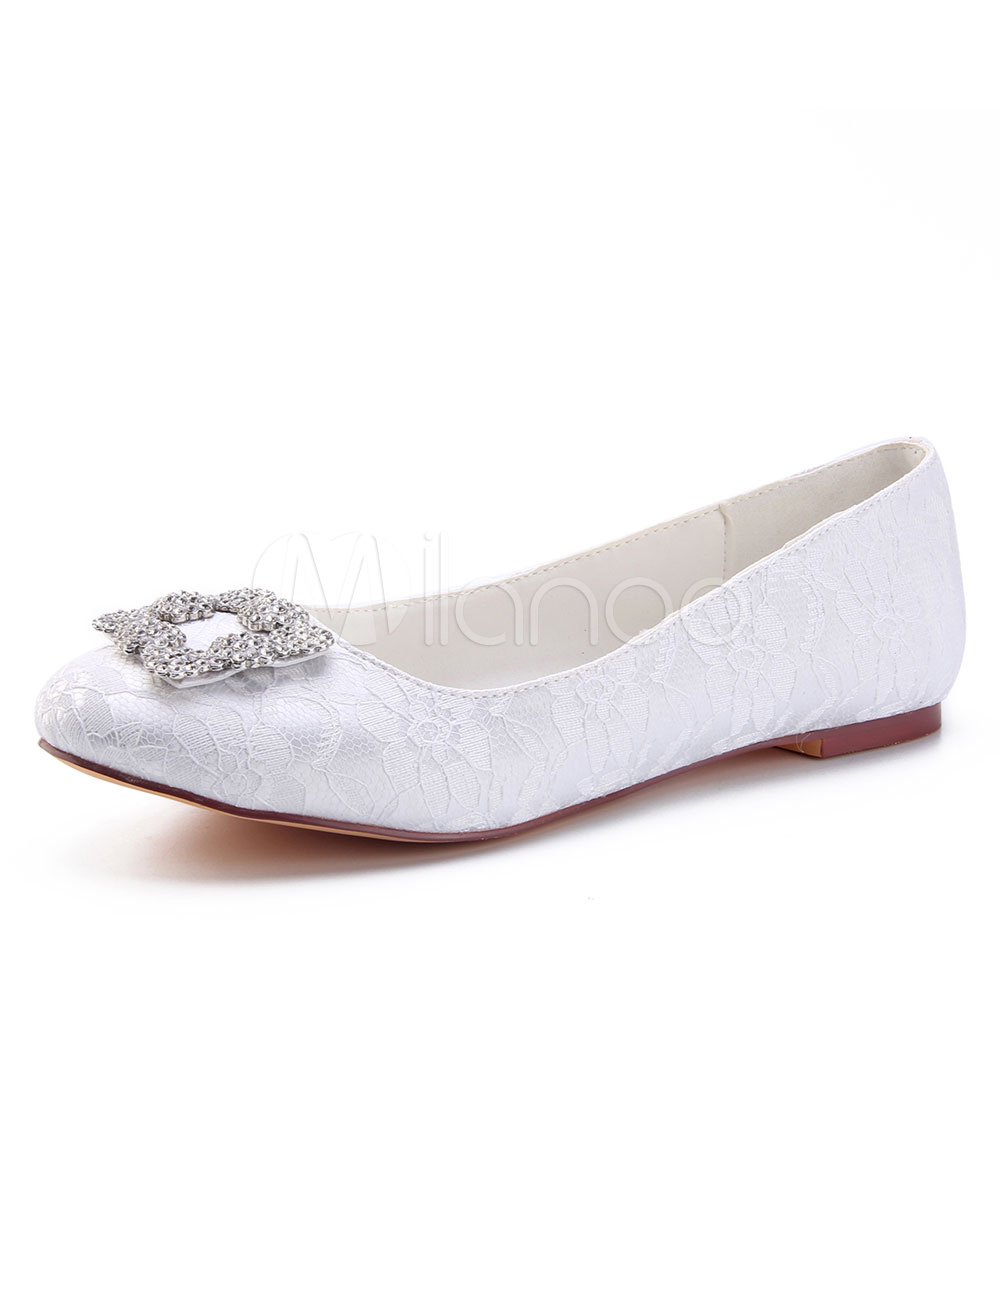 81b58afb5 ... Ivory Wedding Flats Lace Round Toe Rhinestones Slip On Mother Shoes-No.5.  1. 40%OFF. Color:White